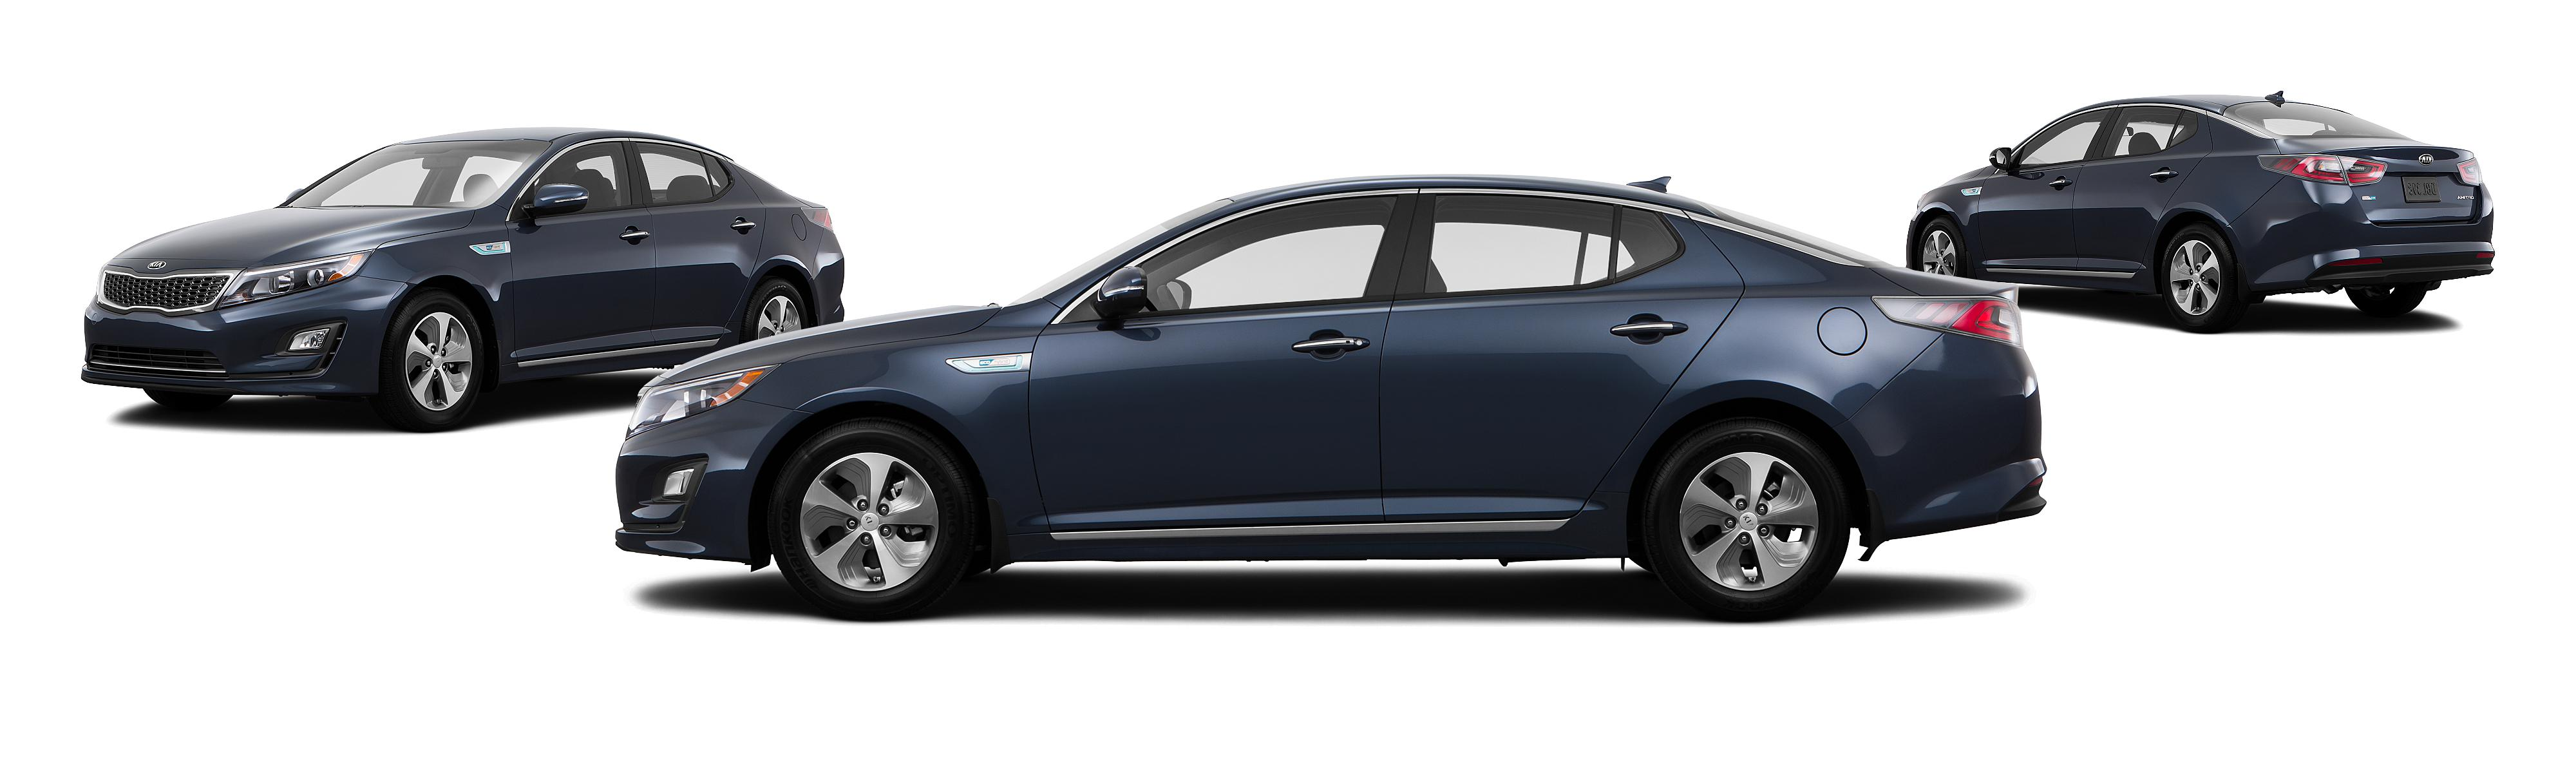 optima hybrid rating kia reviews and interior of awesome luxury